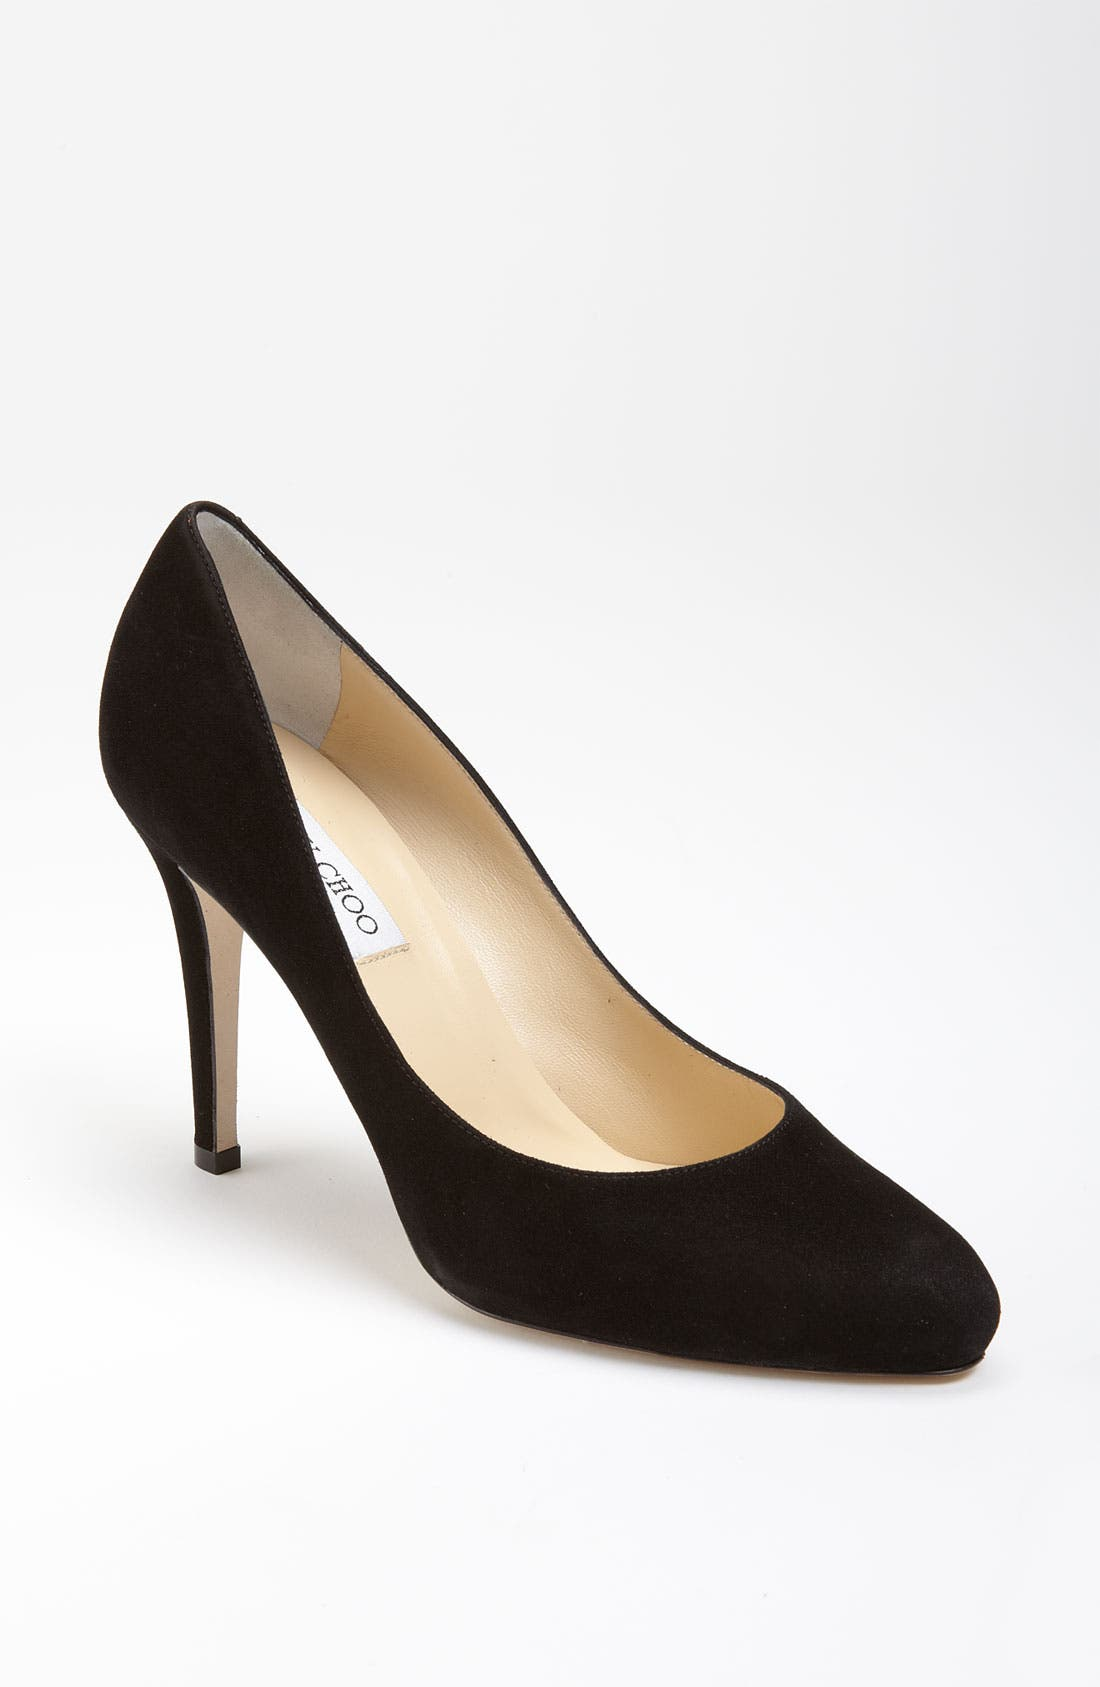 Alternate Image 1 Selected - Jimmy Choo 'Vikki' Pump